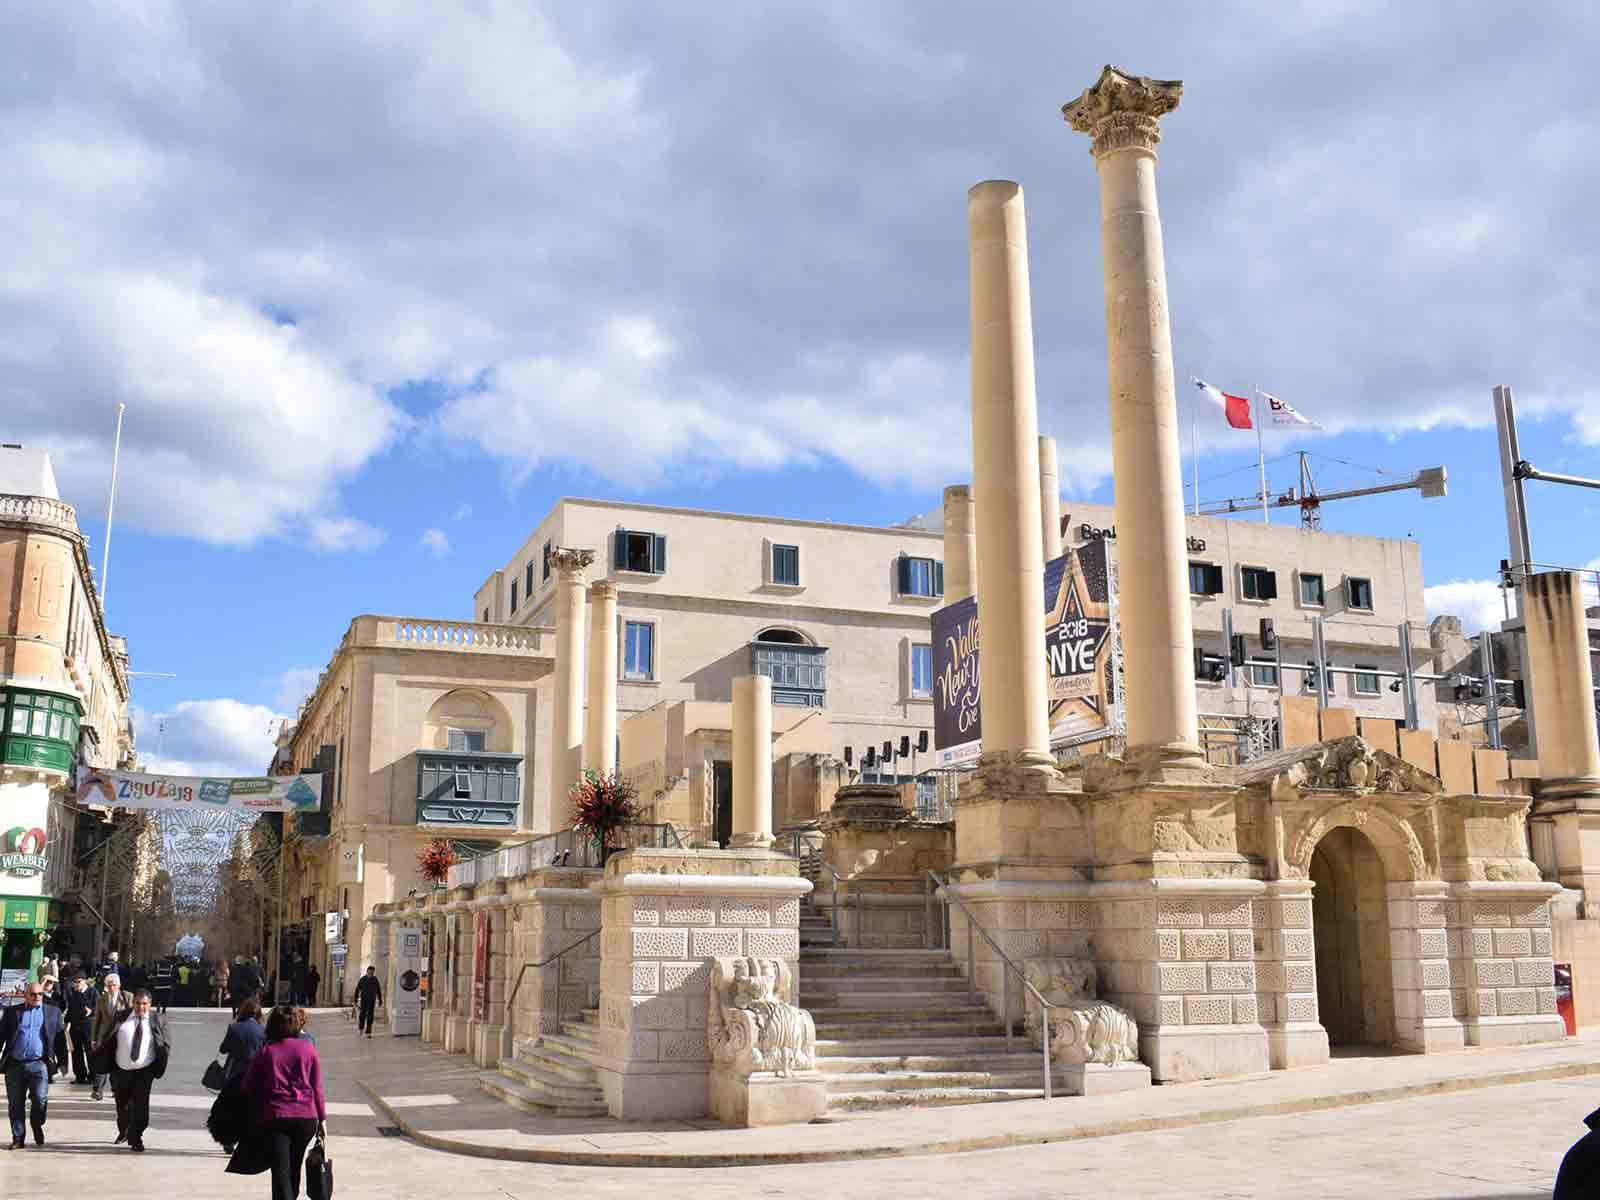 Valletta – the tiny but mighty capital of Malta Pjazza Teatru Real